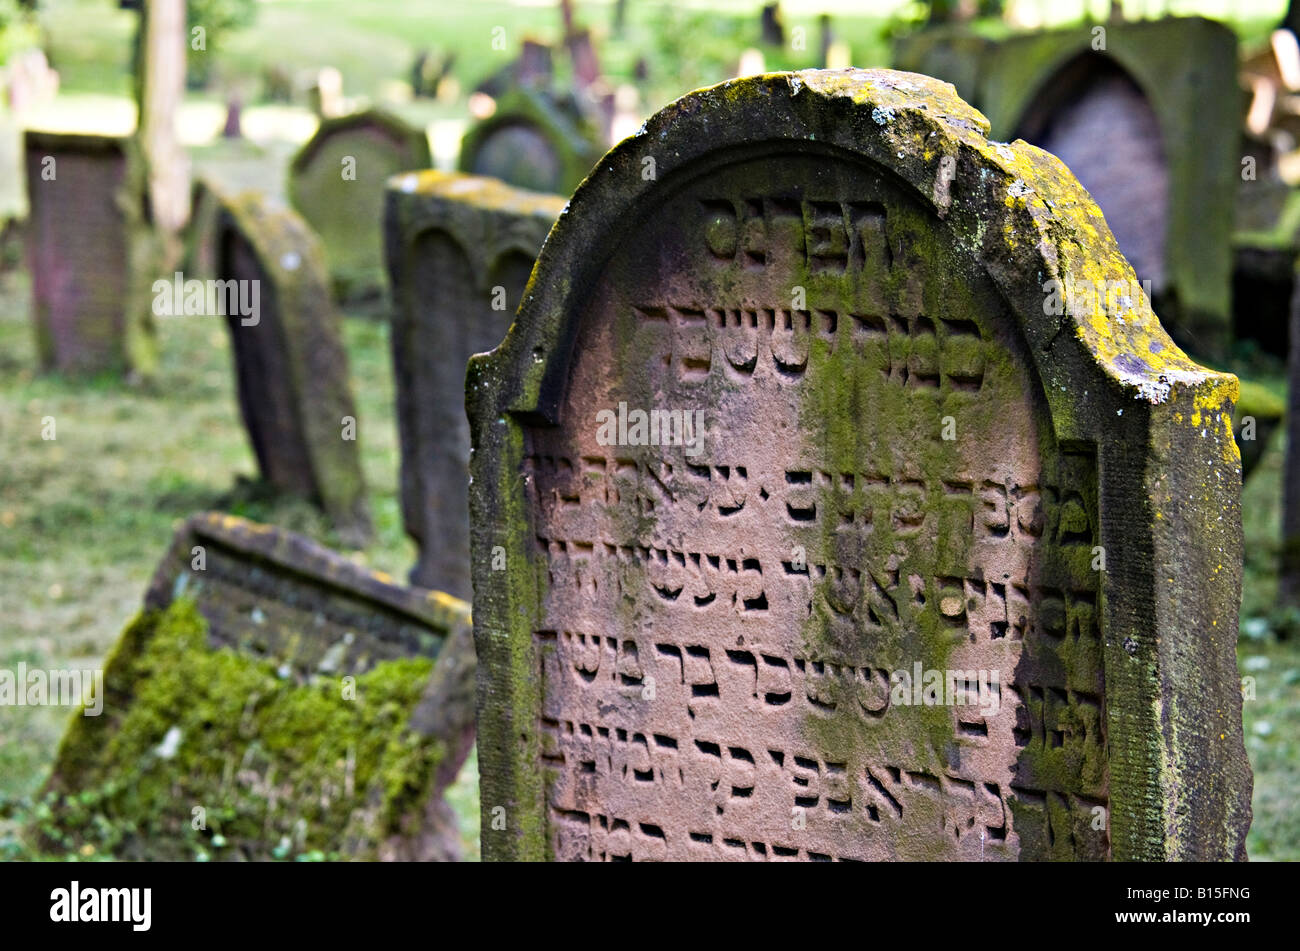 Hebrew writing on gravestone in Jewish cemetery the Alter Judenfriedhof or Herliger Sand Worms Germany - Stock Image